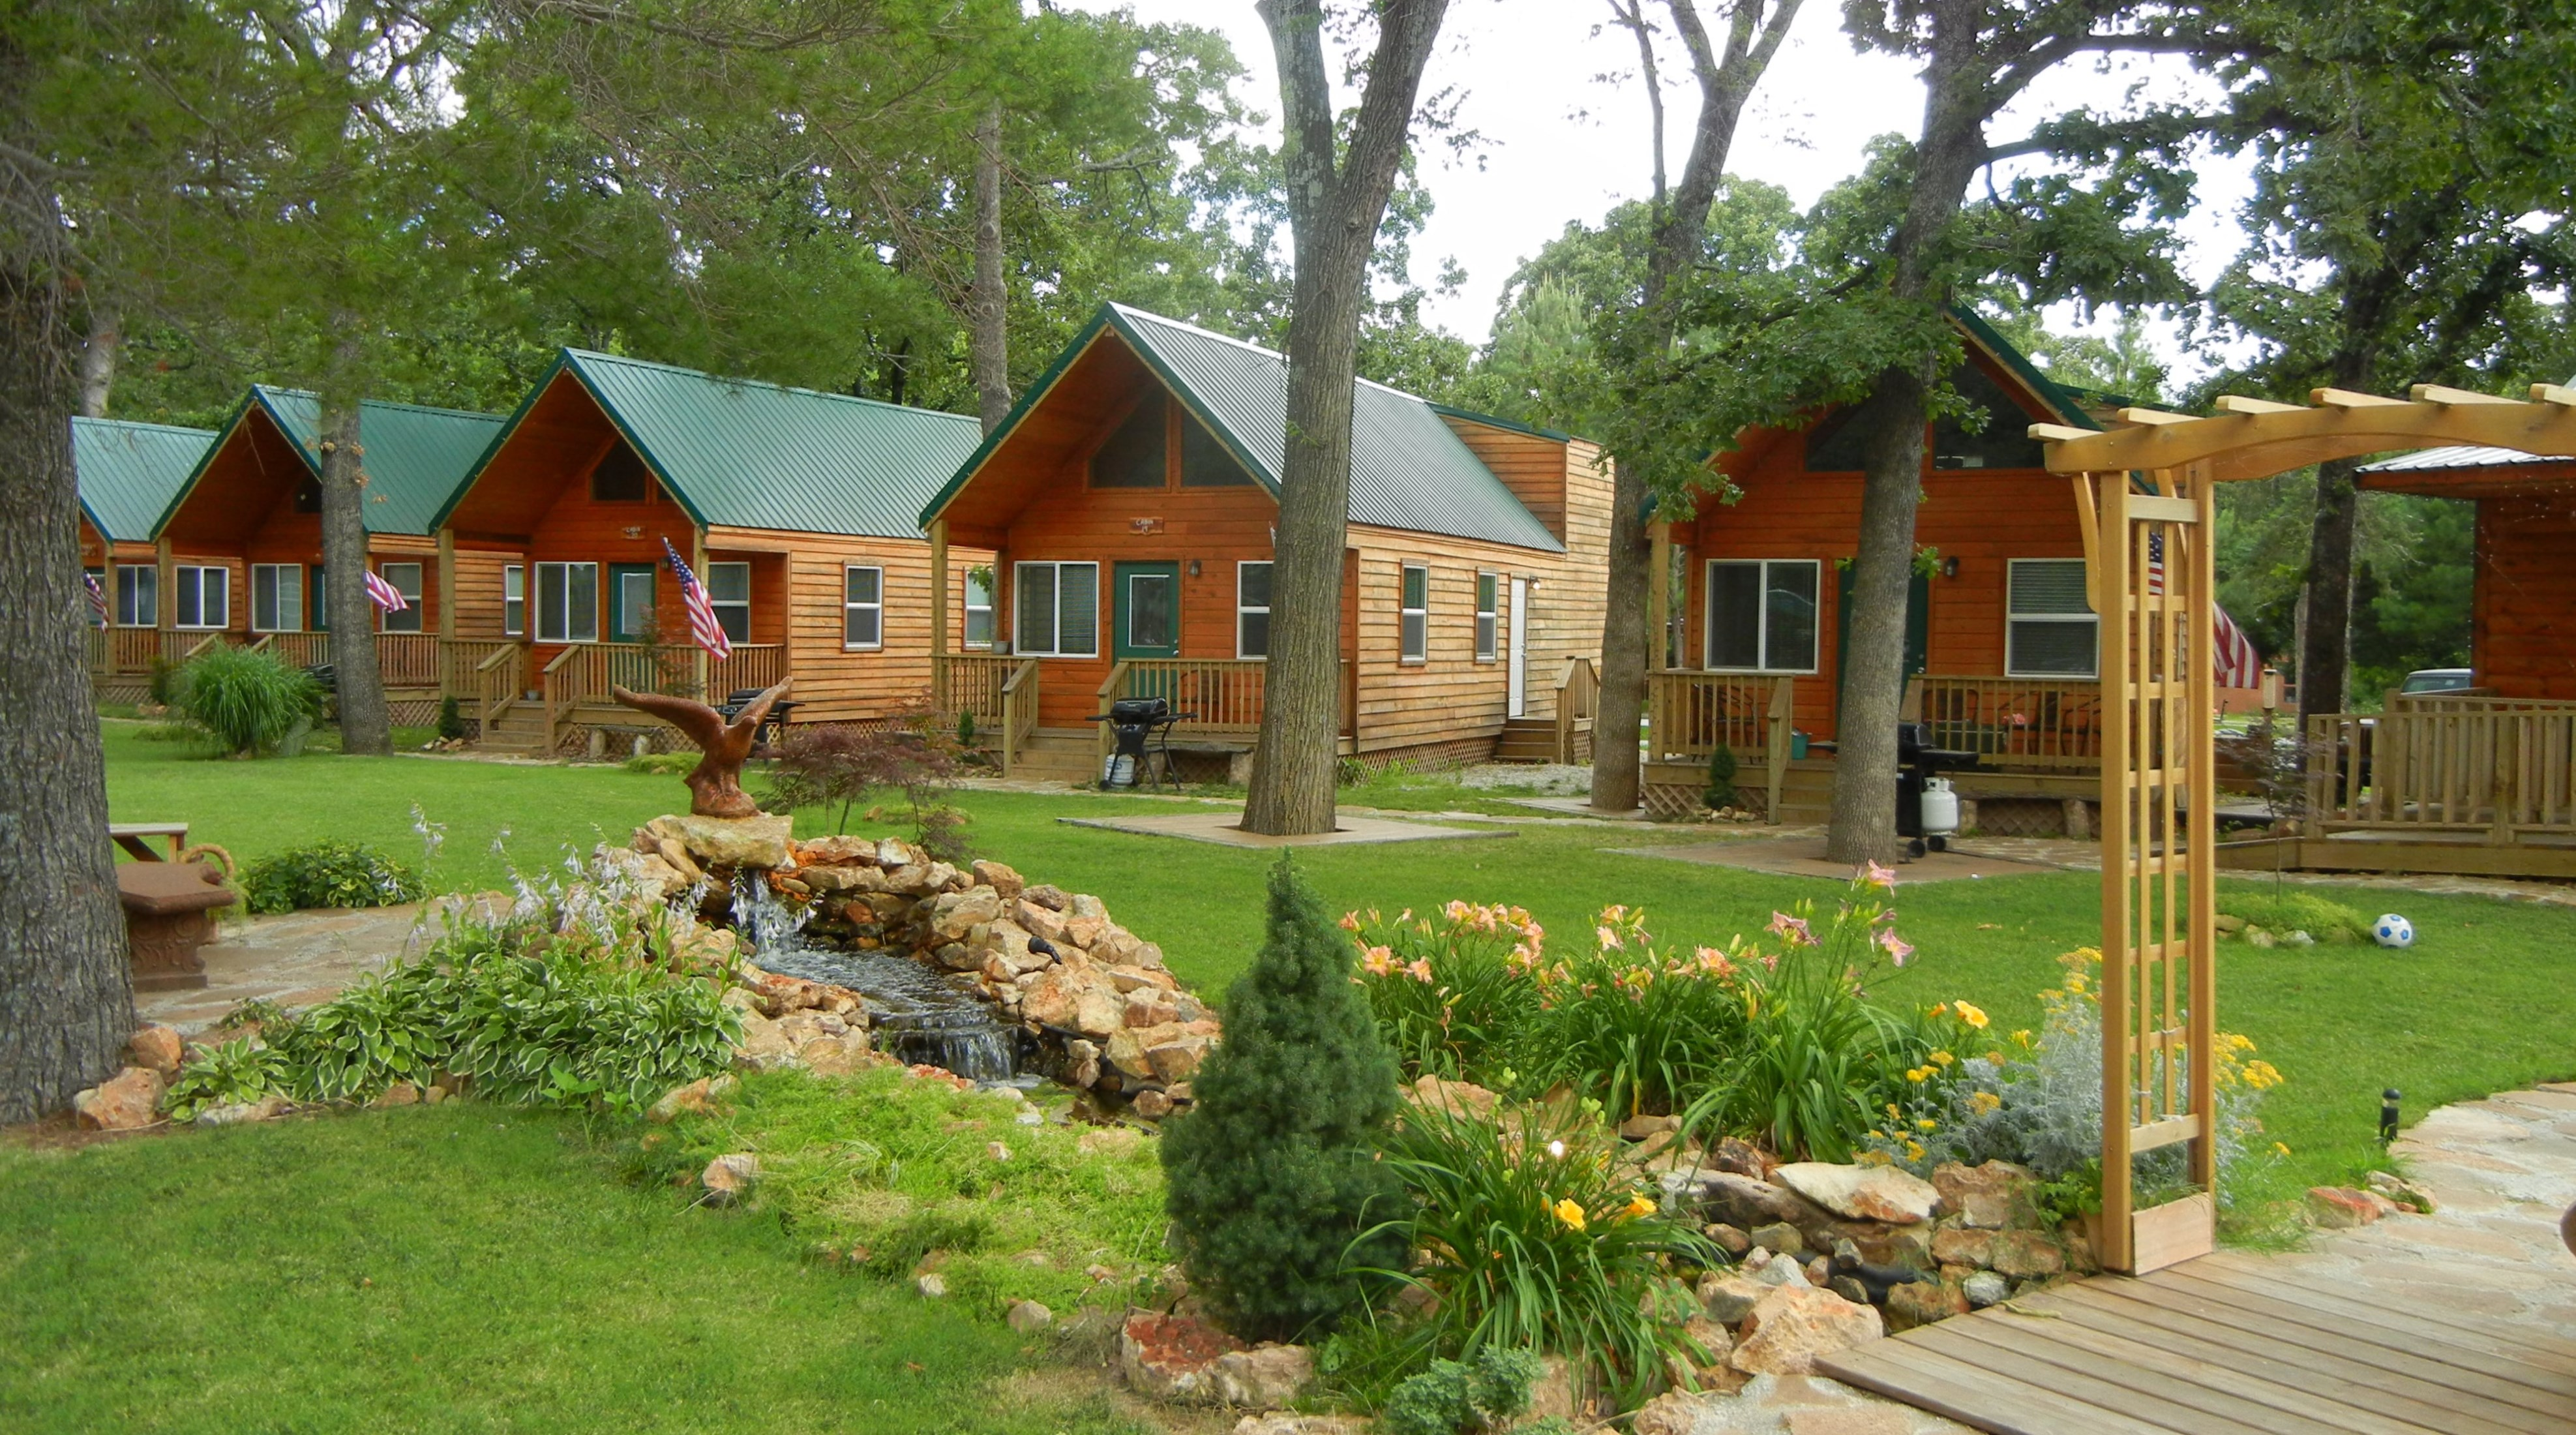 Grand lake ok cabin rentals hotel motel accommodations for Grand lake cabins